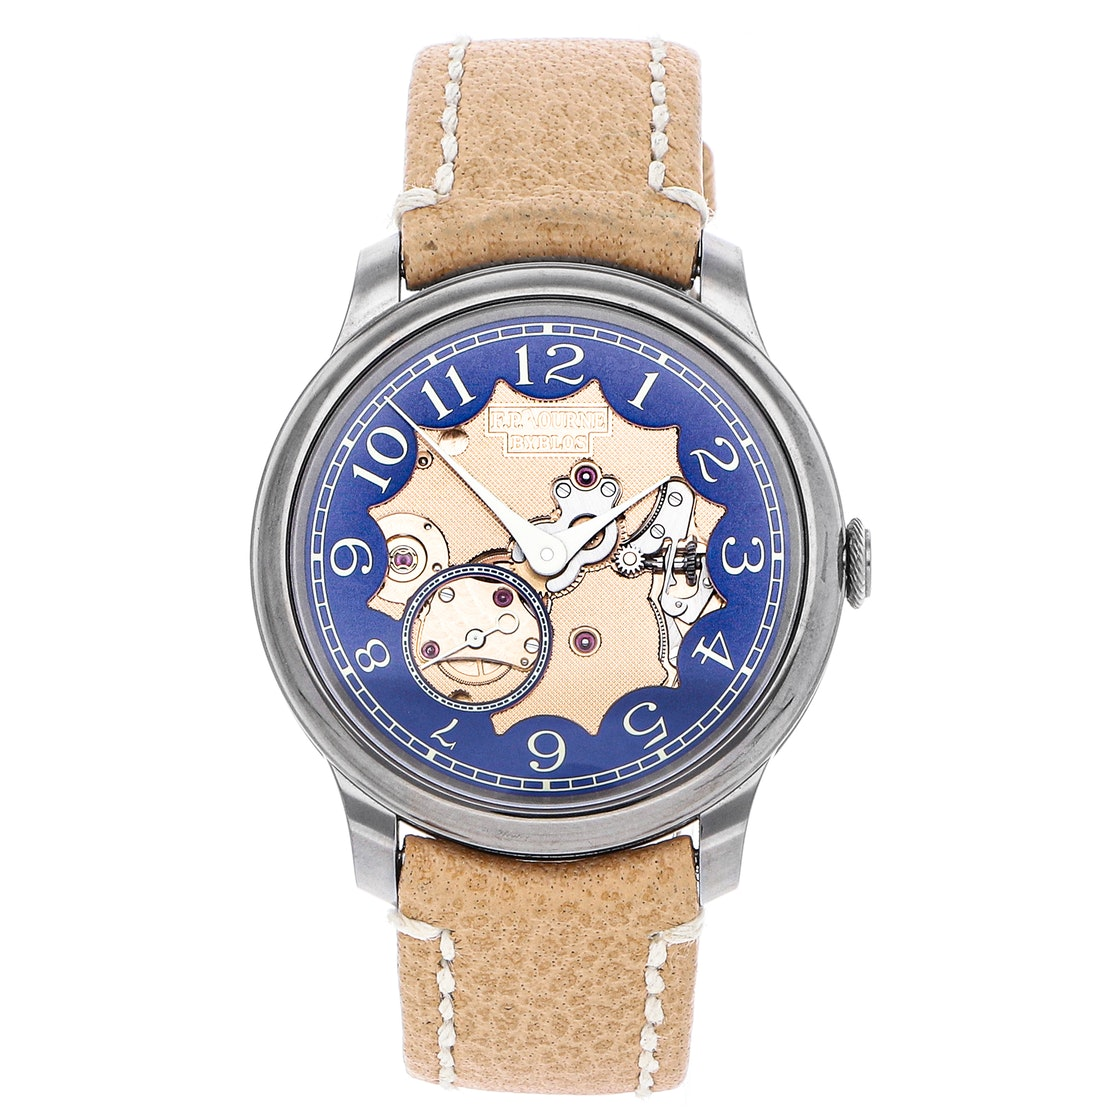 "F.P. Journe Chronometre Bleu ""Byblos"" Limited Edition CHR BLEU BYBLOS"